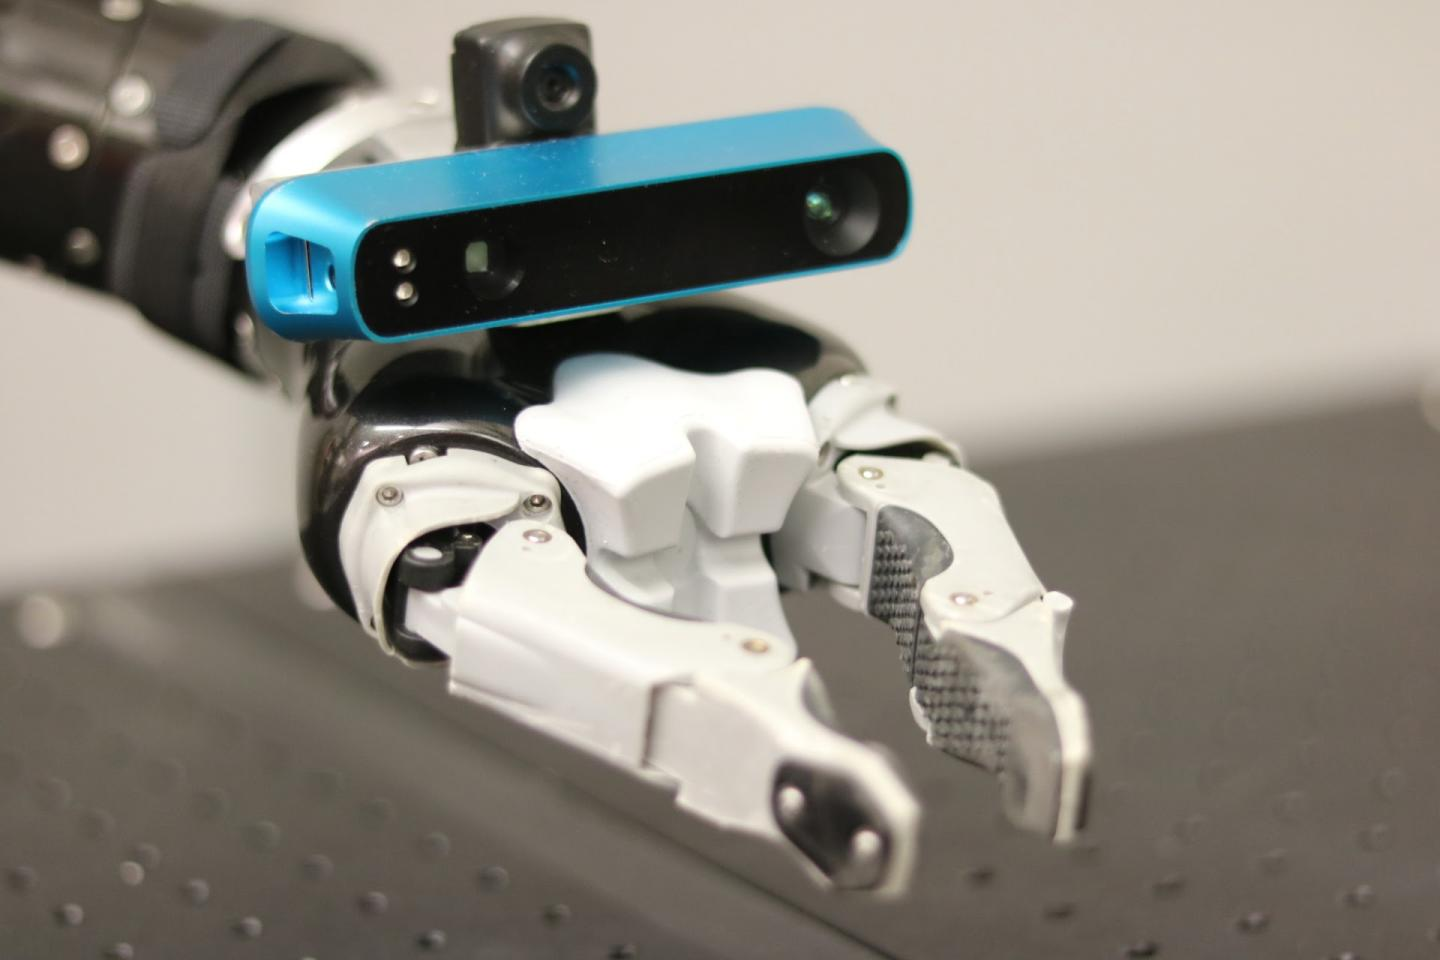 What's New In Robotics This Week - May 20